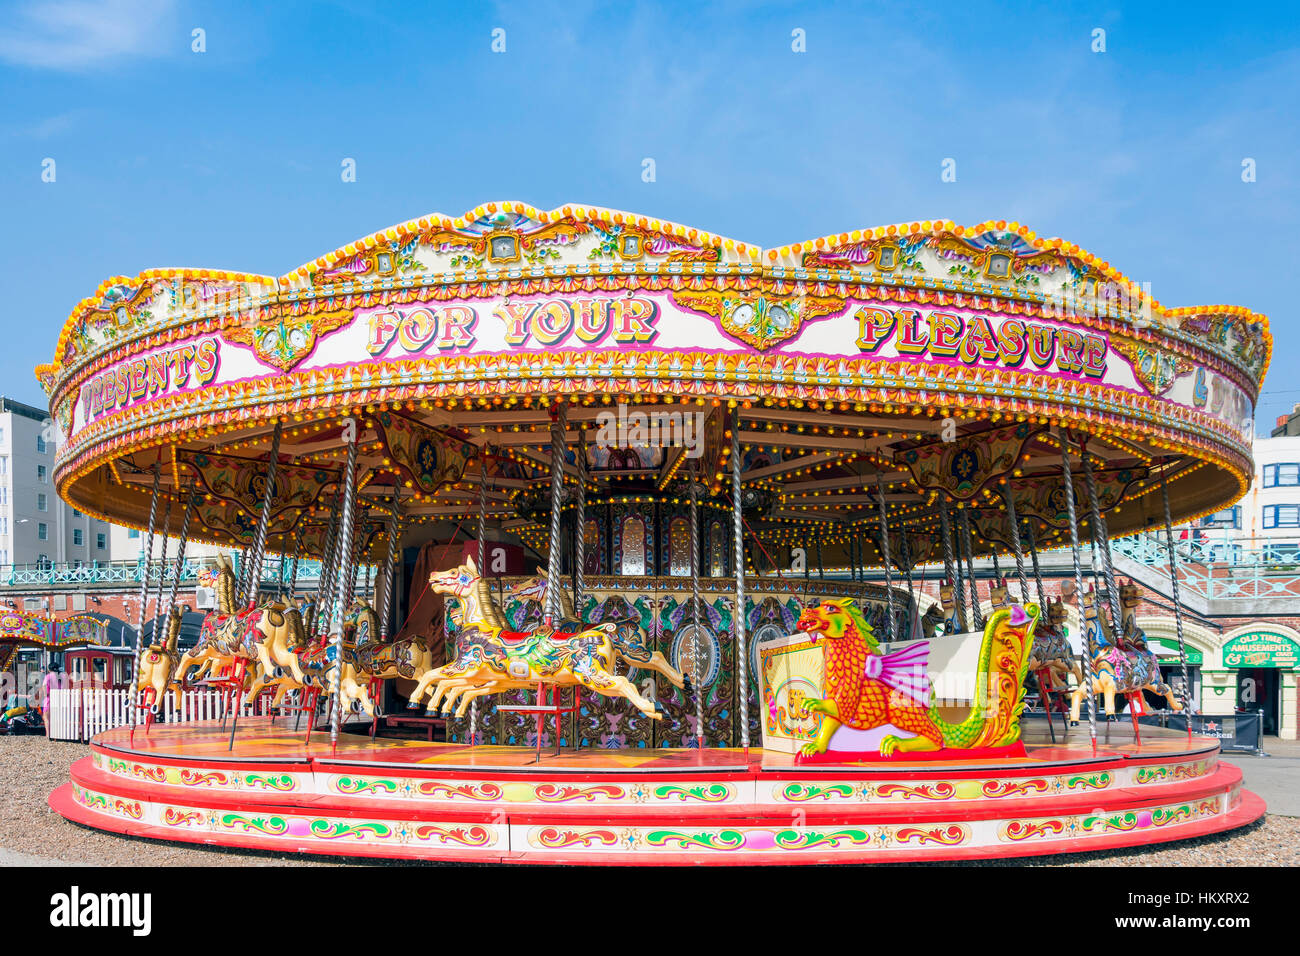 Children's carousel on beach promenade, Brighton, East Sussex, England, United Kingdom - Stock Image